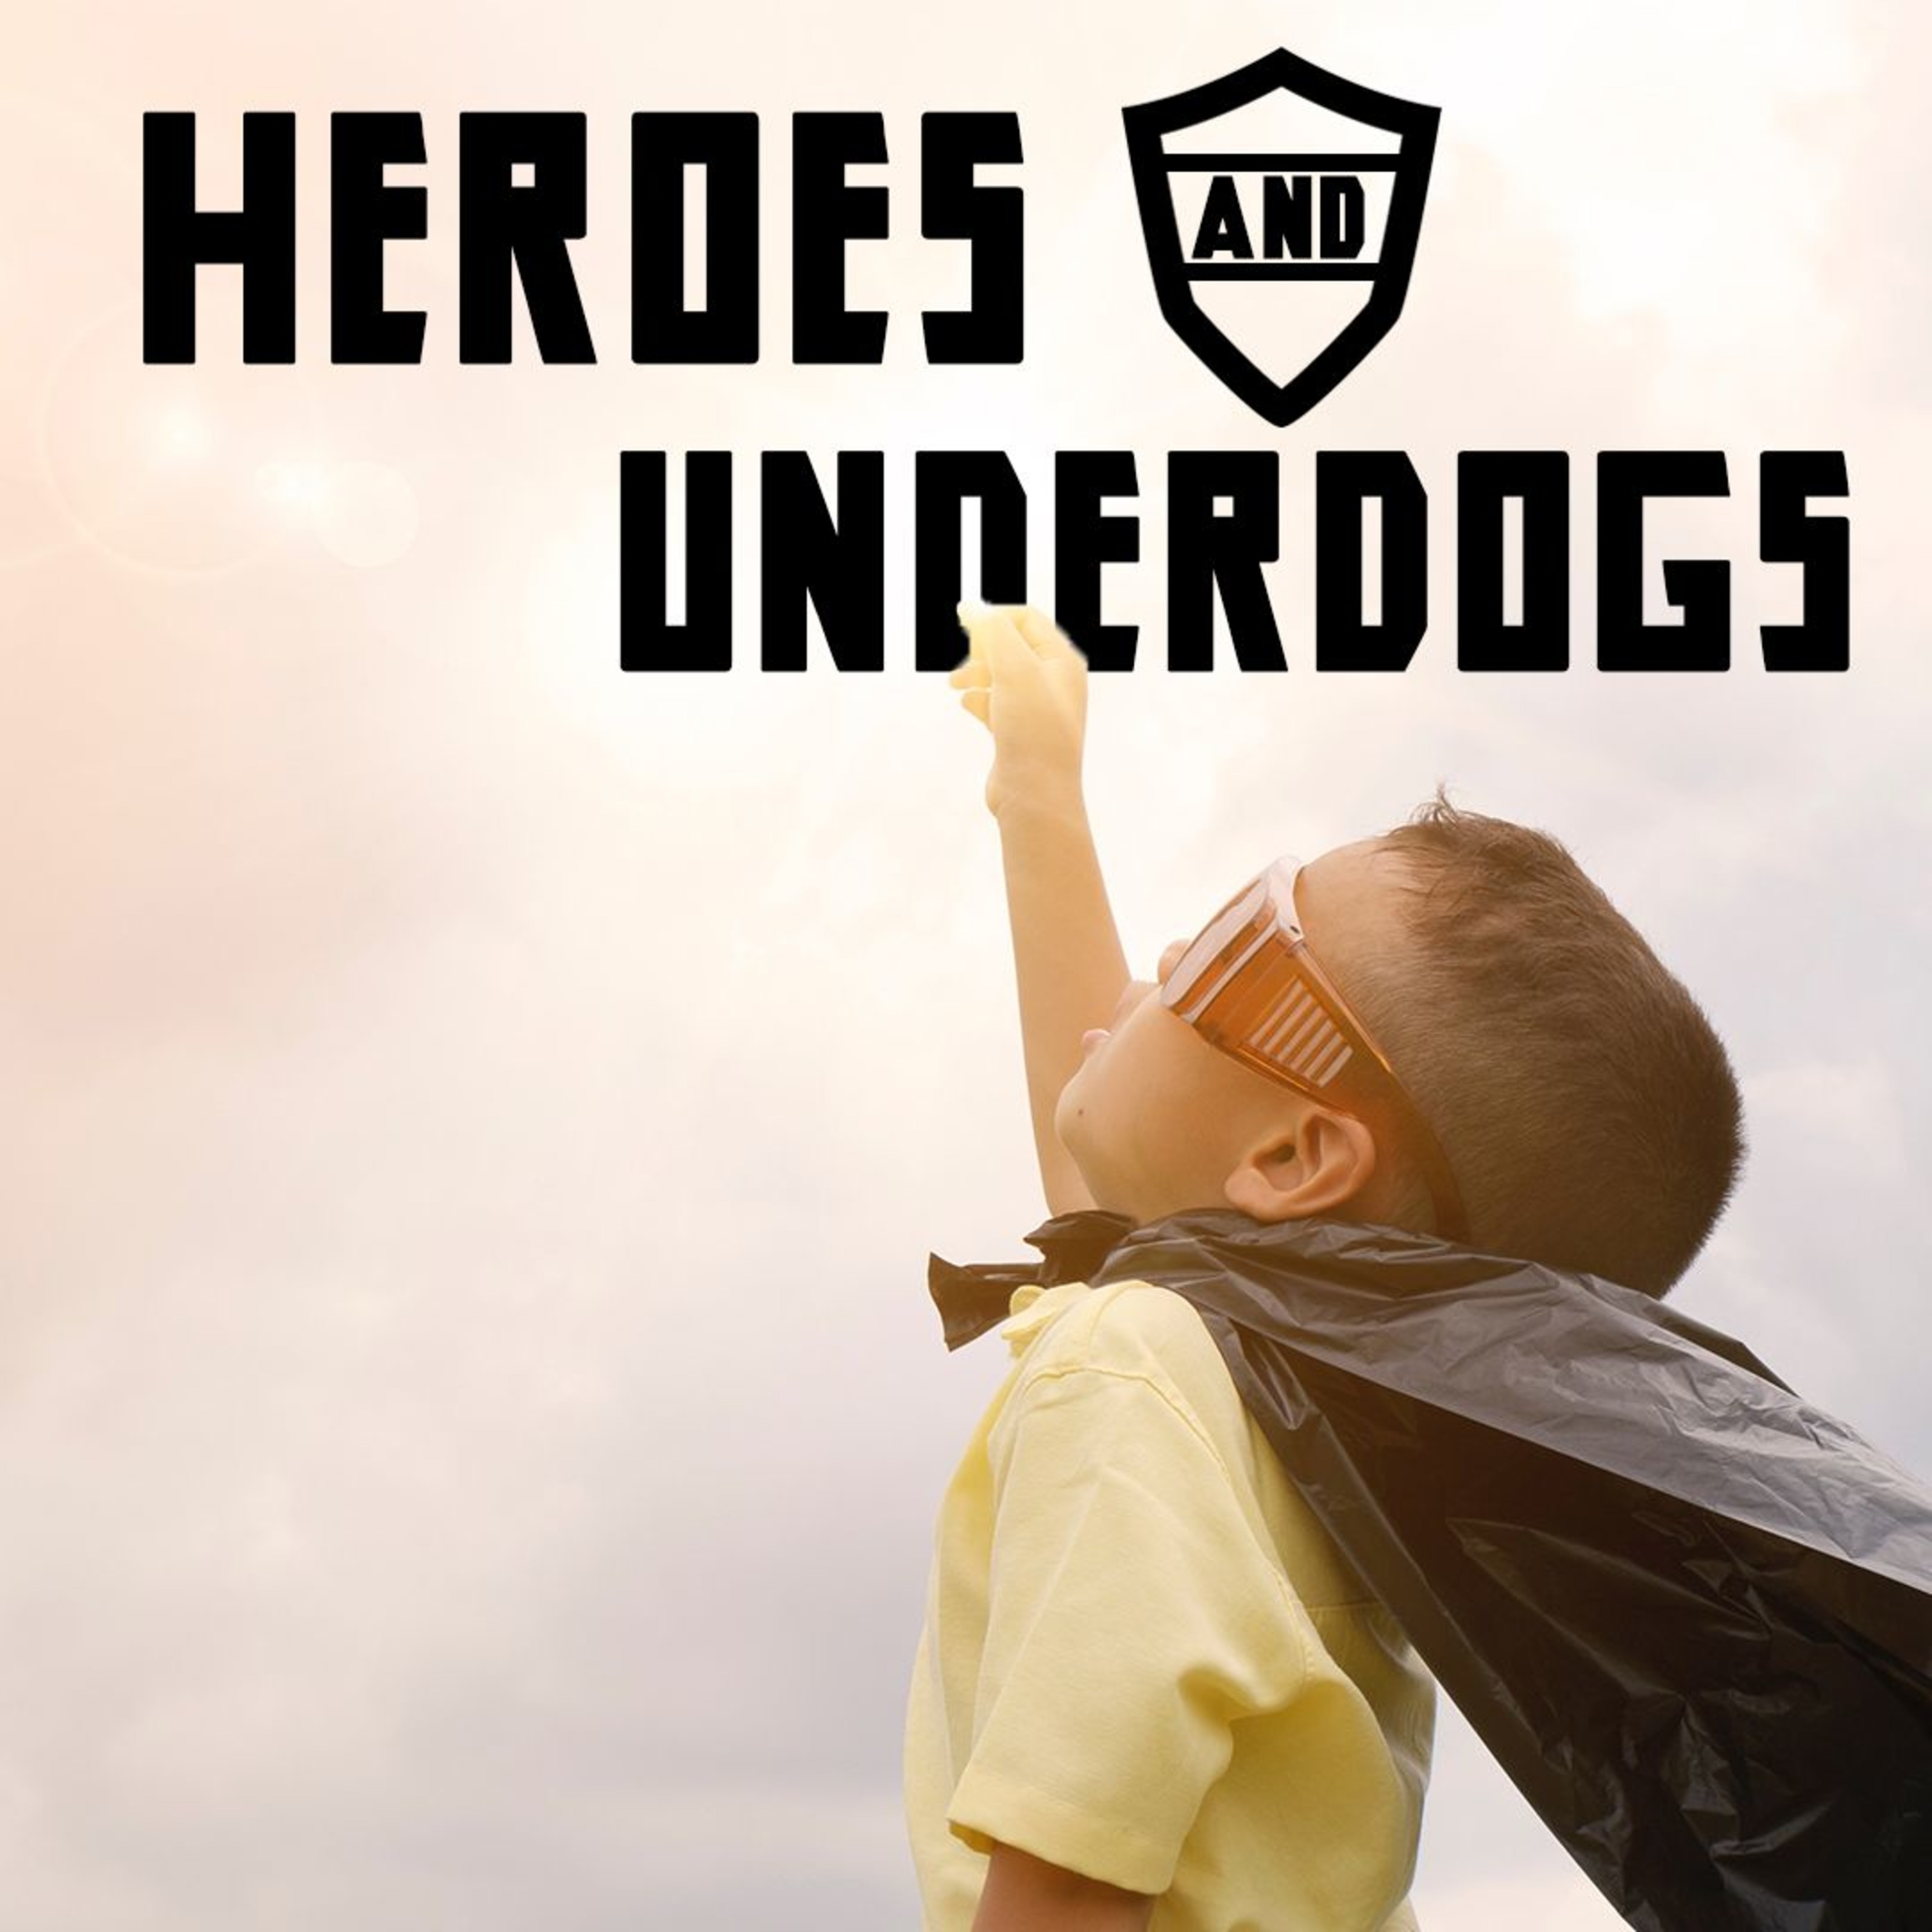 Heroes and Underdogs #20